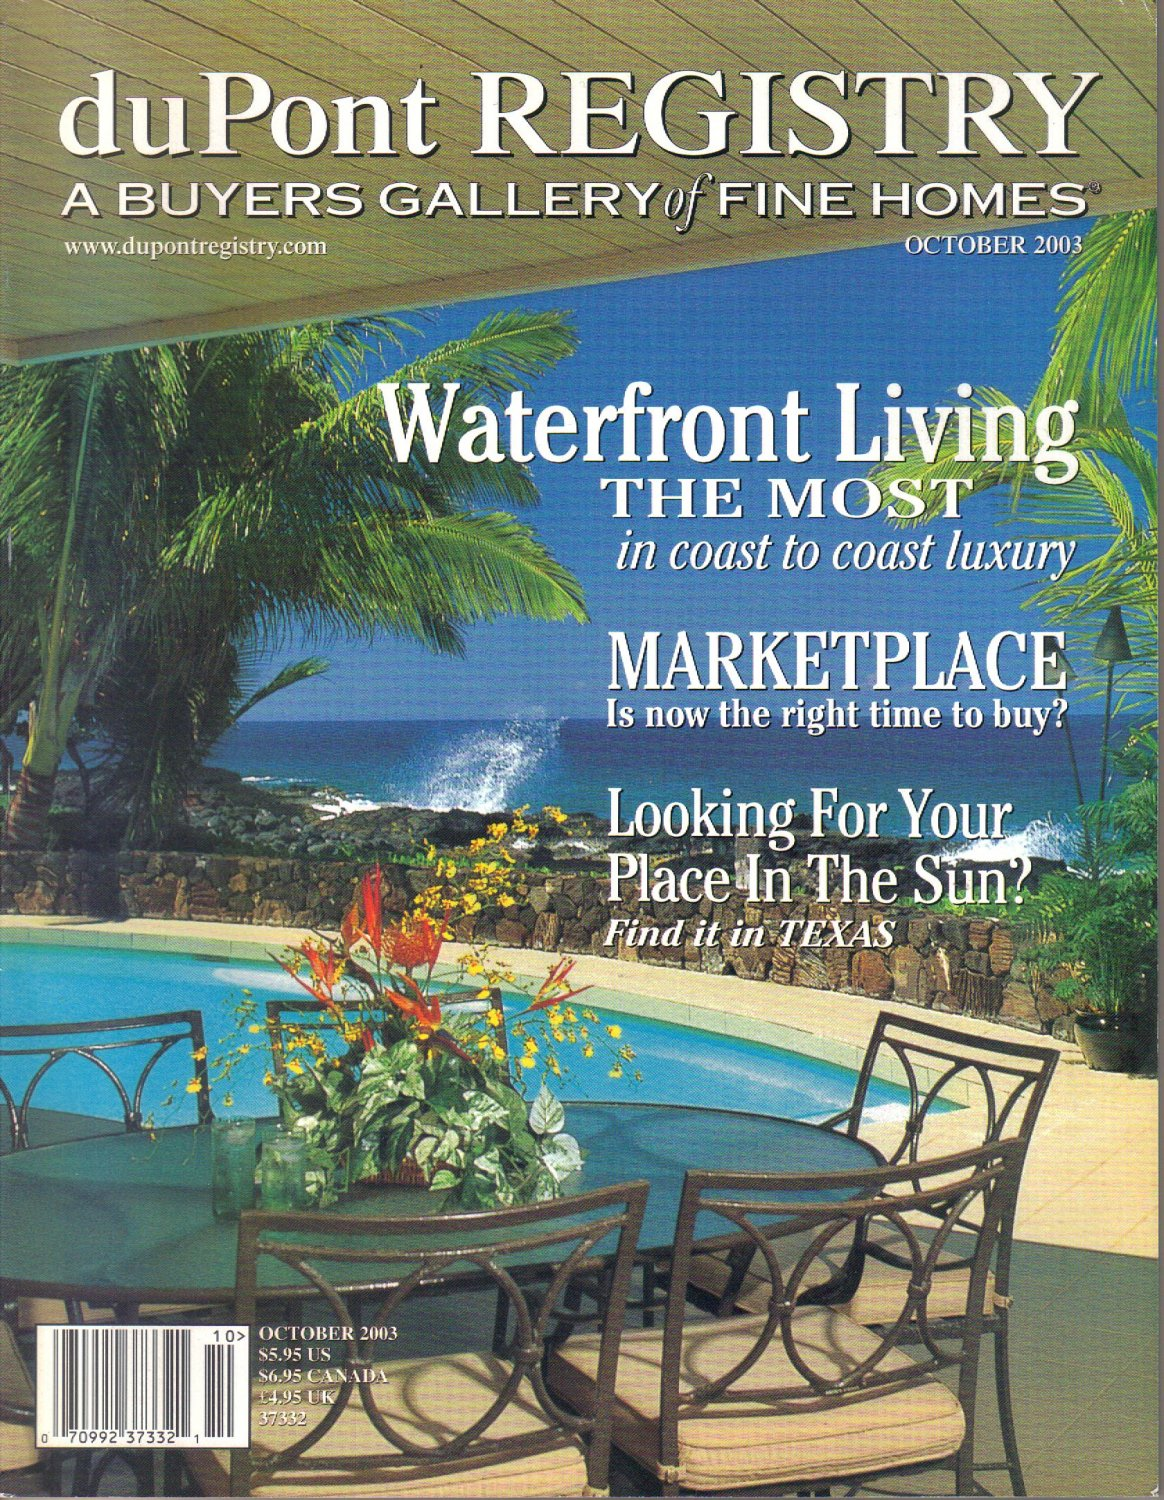 duPont Registry A Buyers Gallery of Fine Homes October 2003-Andalucia-Charles Stinson